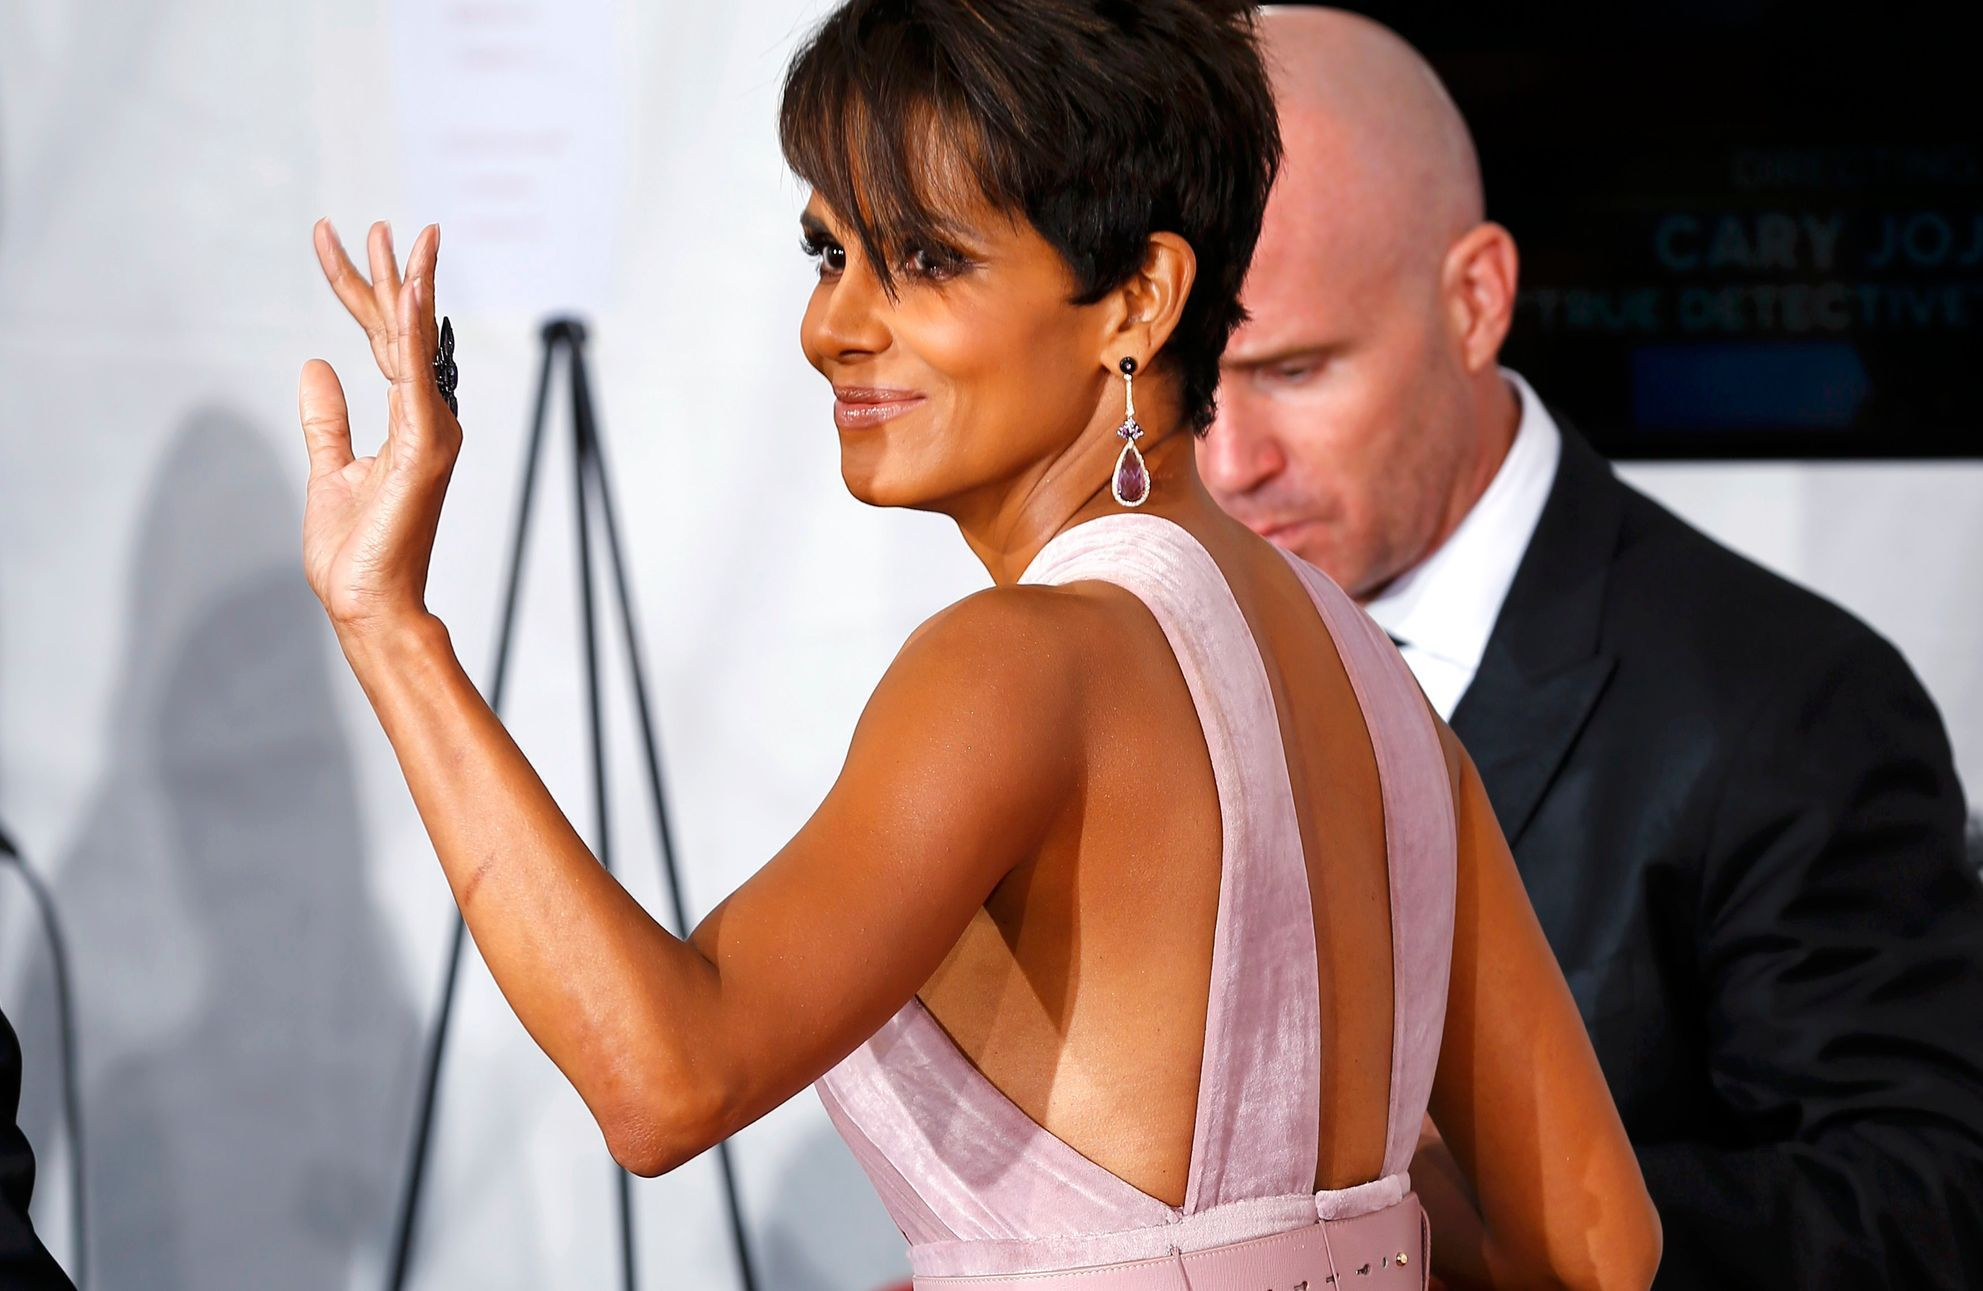 Halle Berry leaves backstage at the 66th Primetime Emmy Awards in Los Angeles